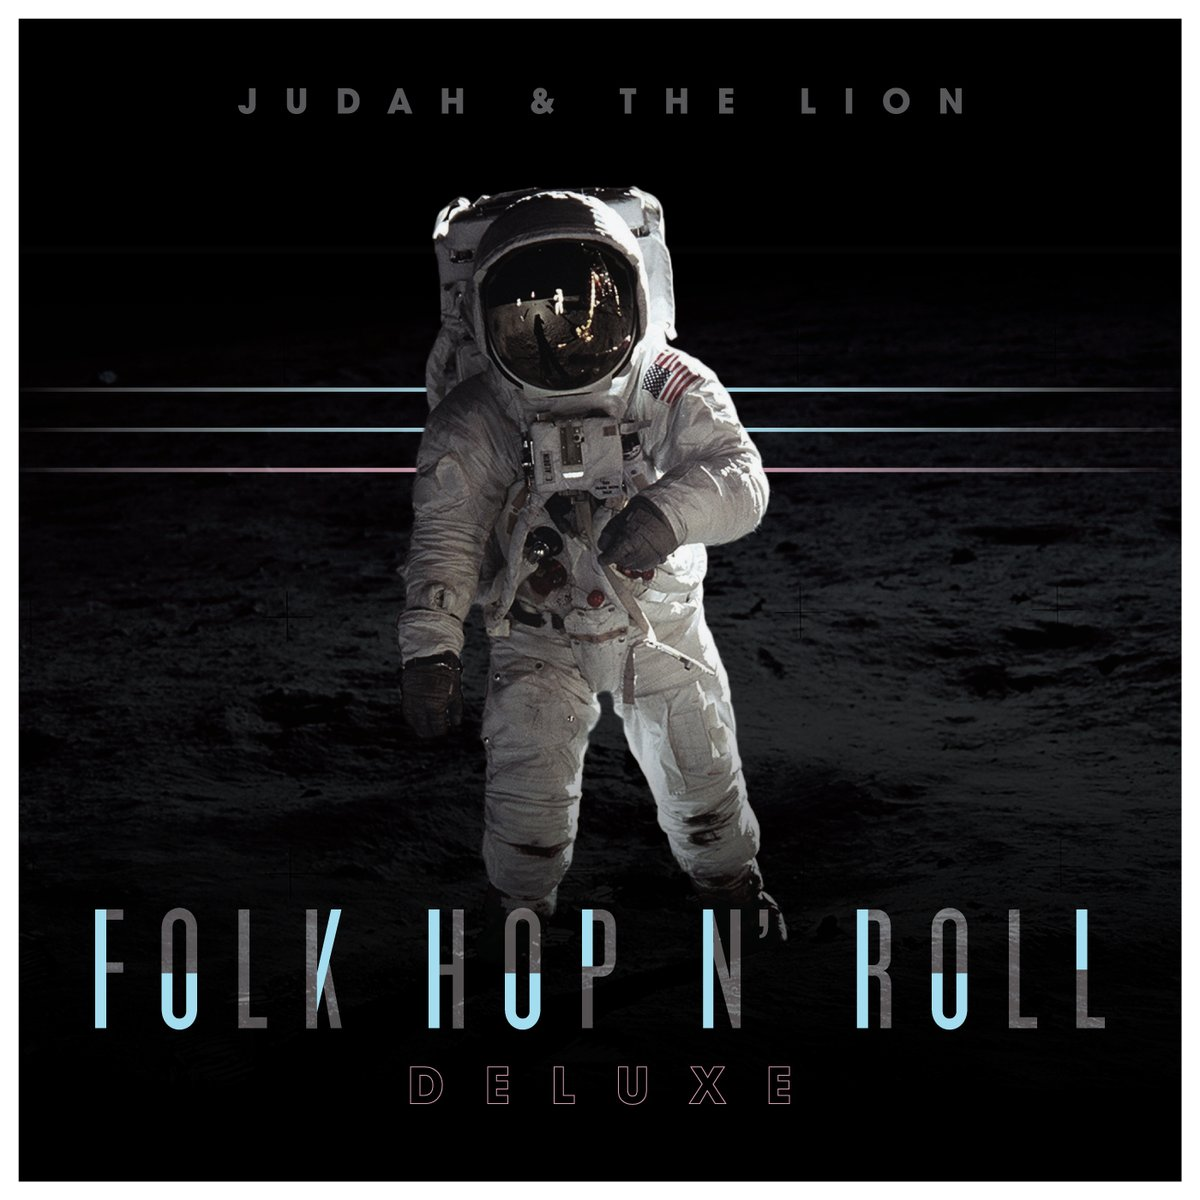 judah-and-the-lion-deluxe